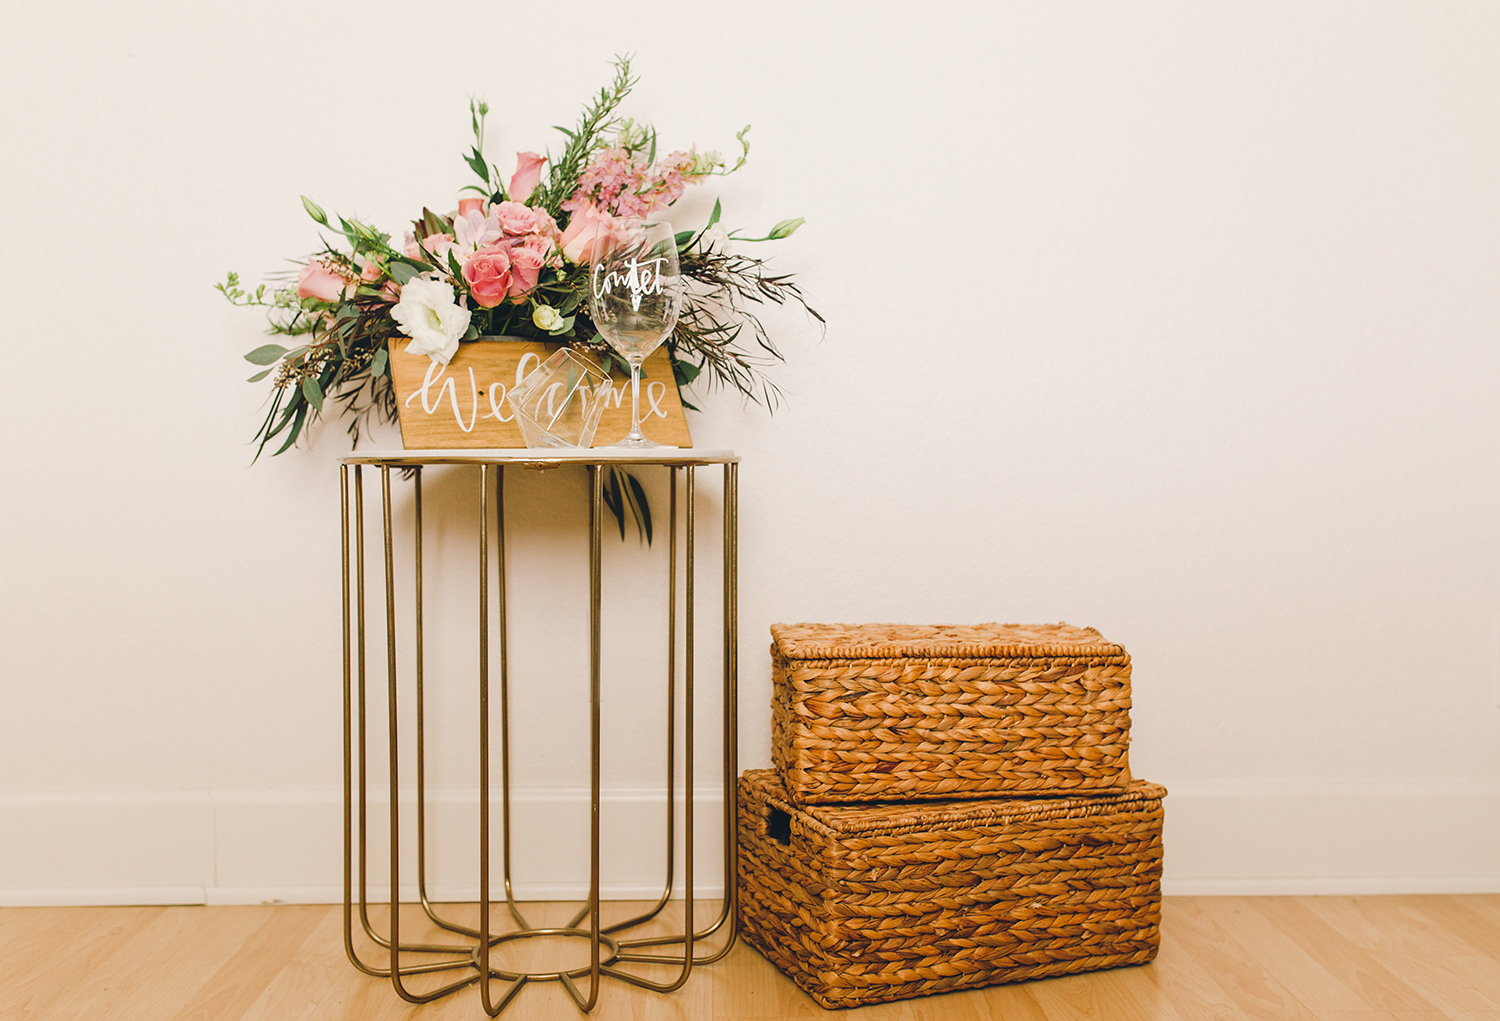 A great way to hide gifts at a white elephant parties, baskets when you arrive | A Fabulous Fete